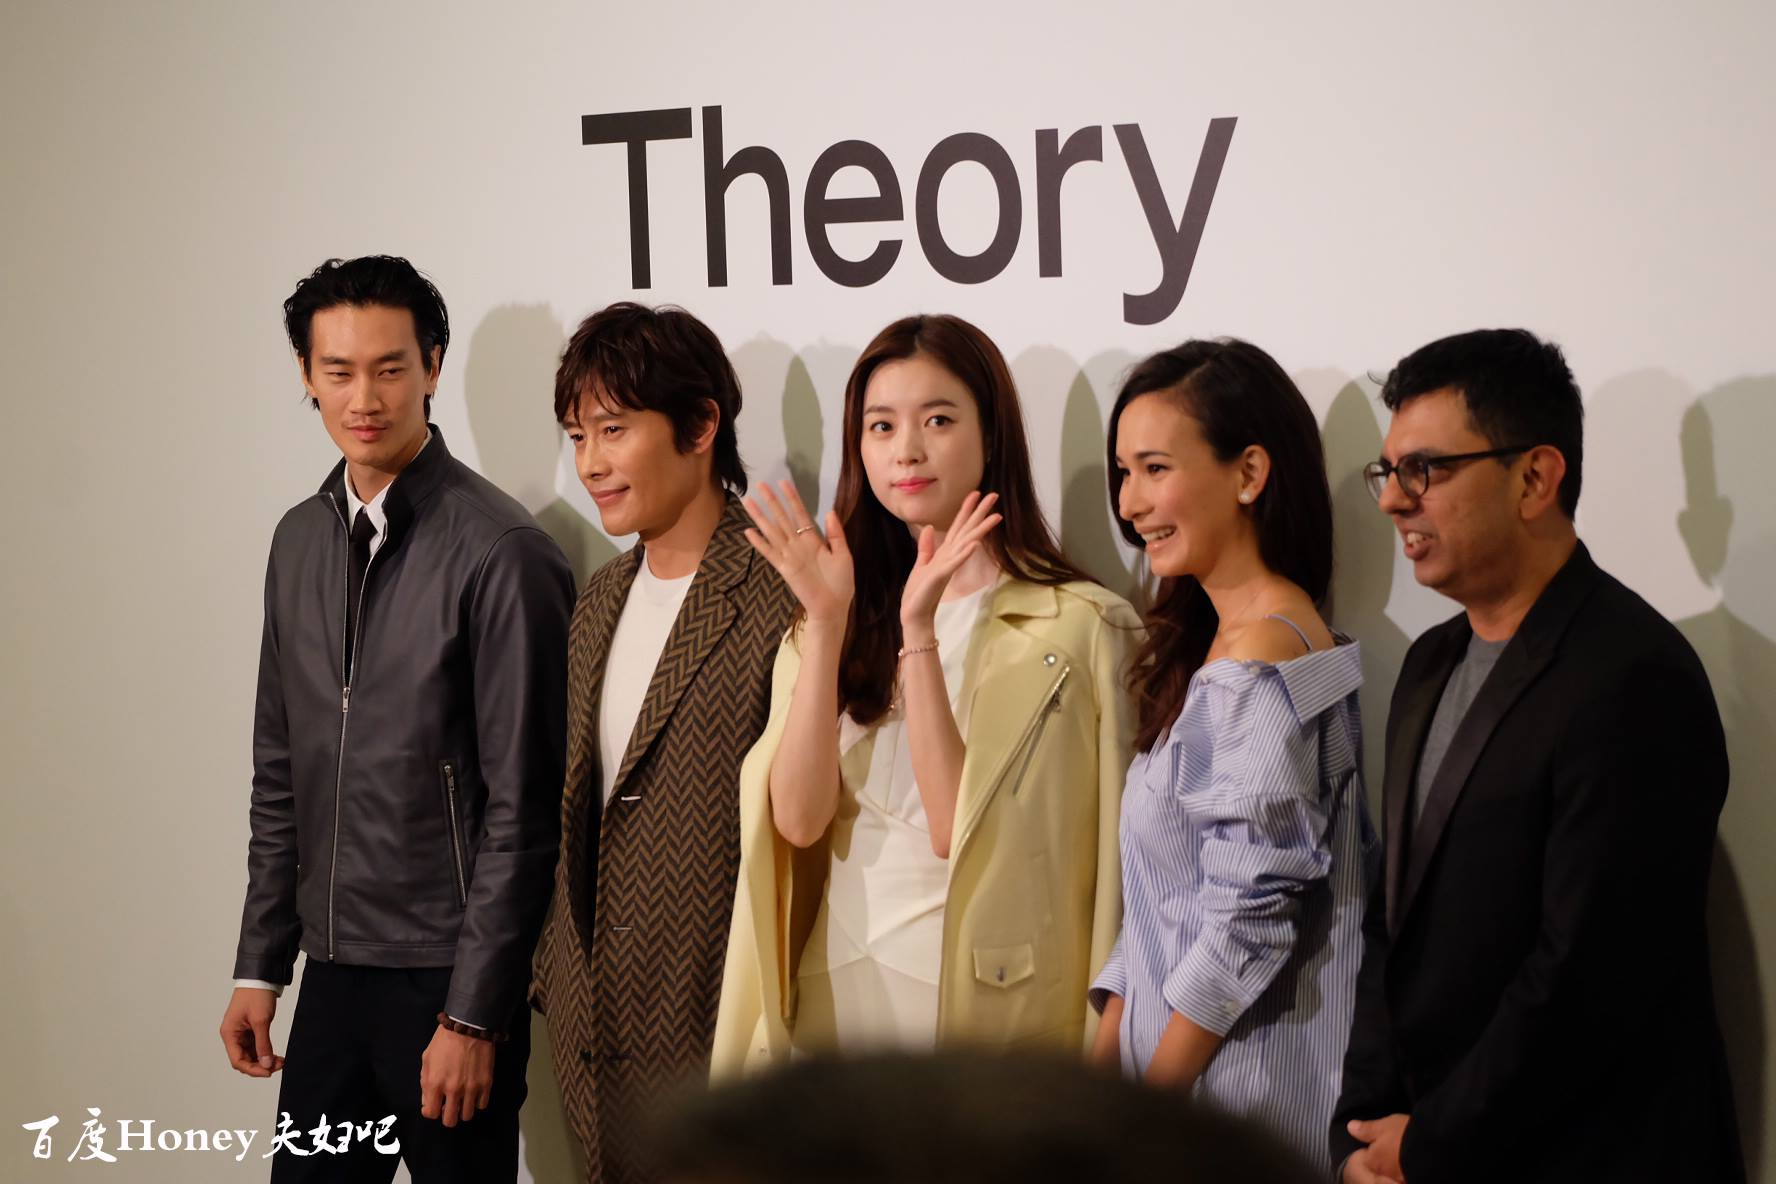 Han Hyo Joo, Lee Byung Hun and other celebrities who attended the opening event.